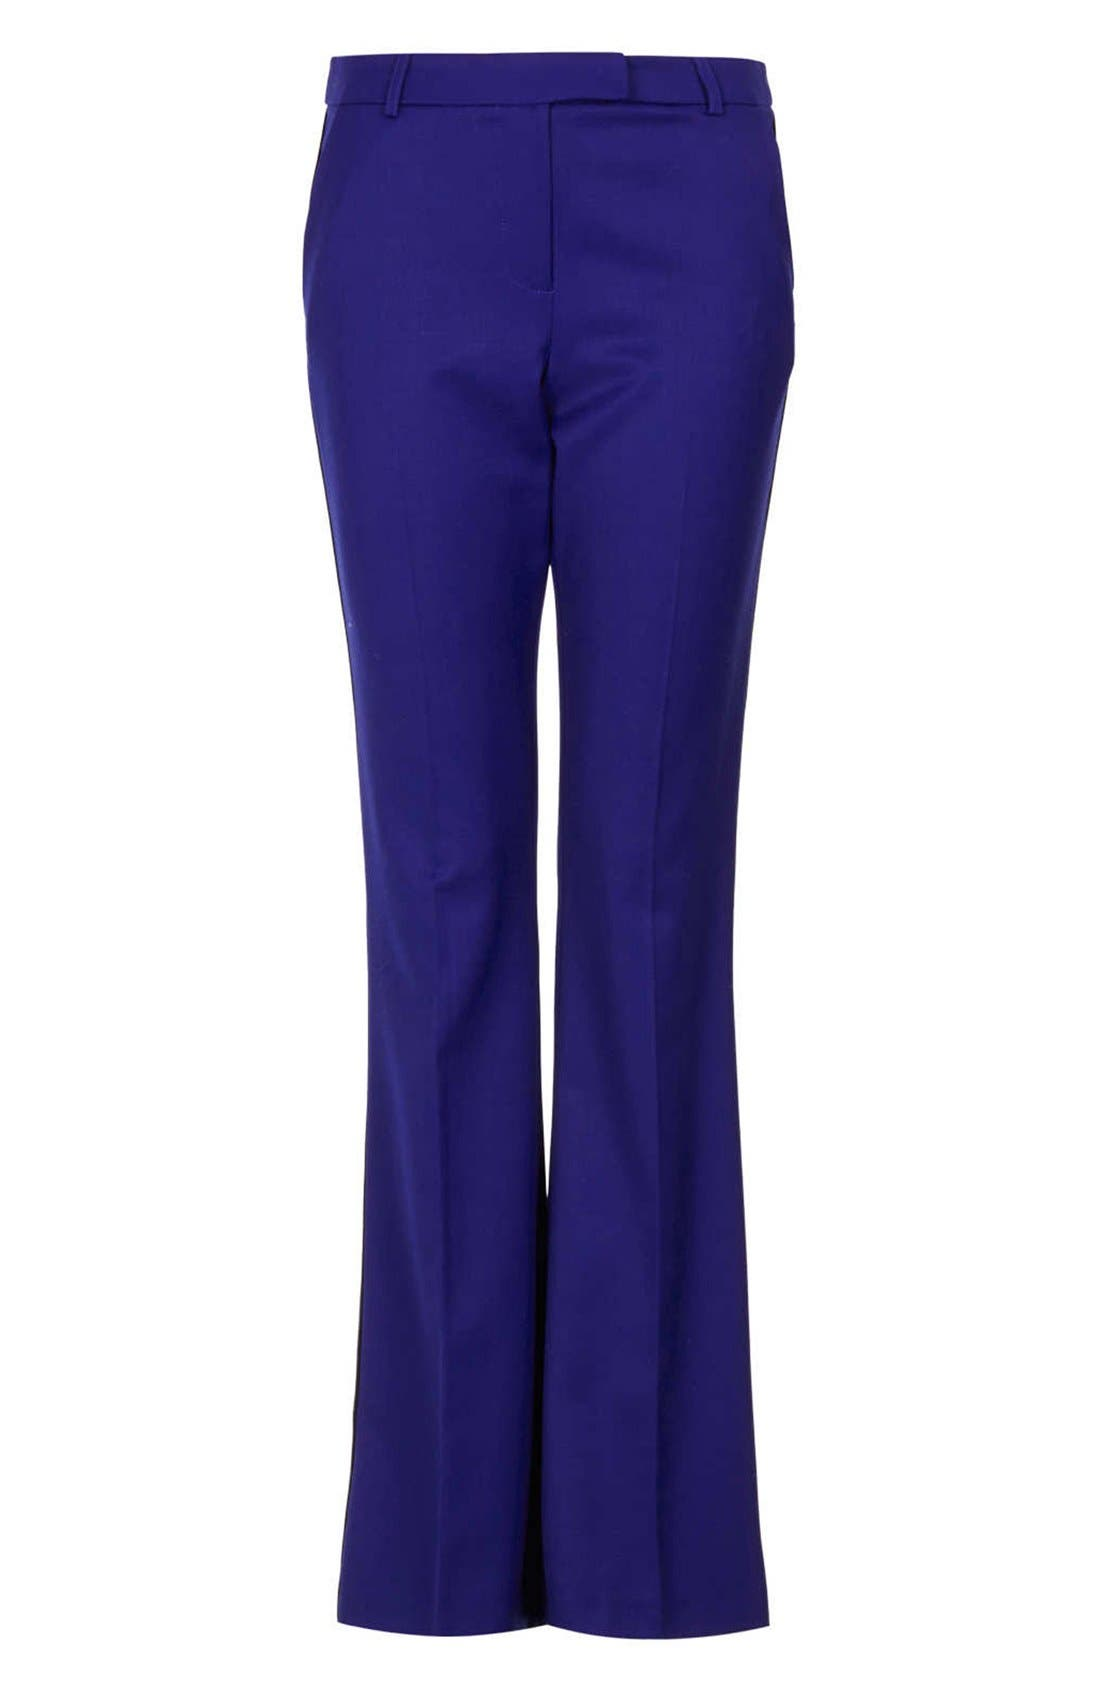 Alternate Image 3  - Topshop Piped Flare Leg Trousers